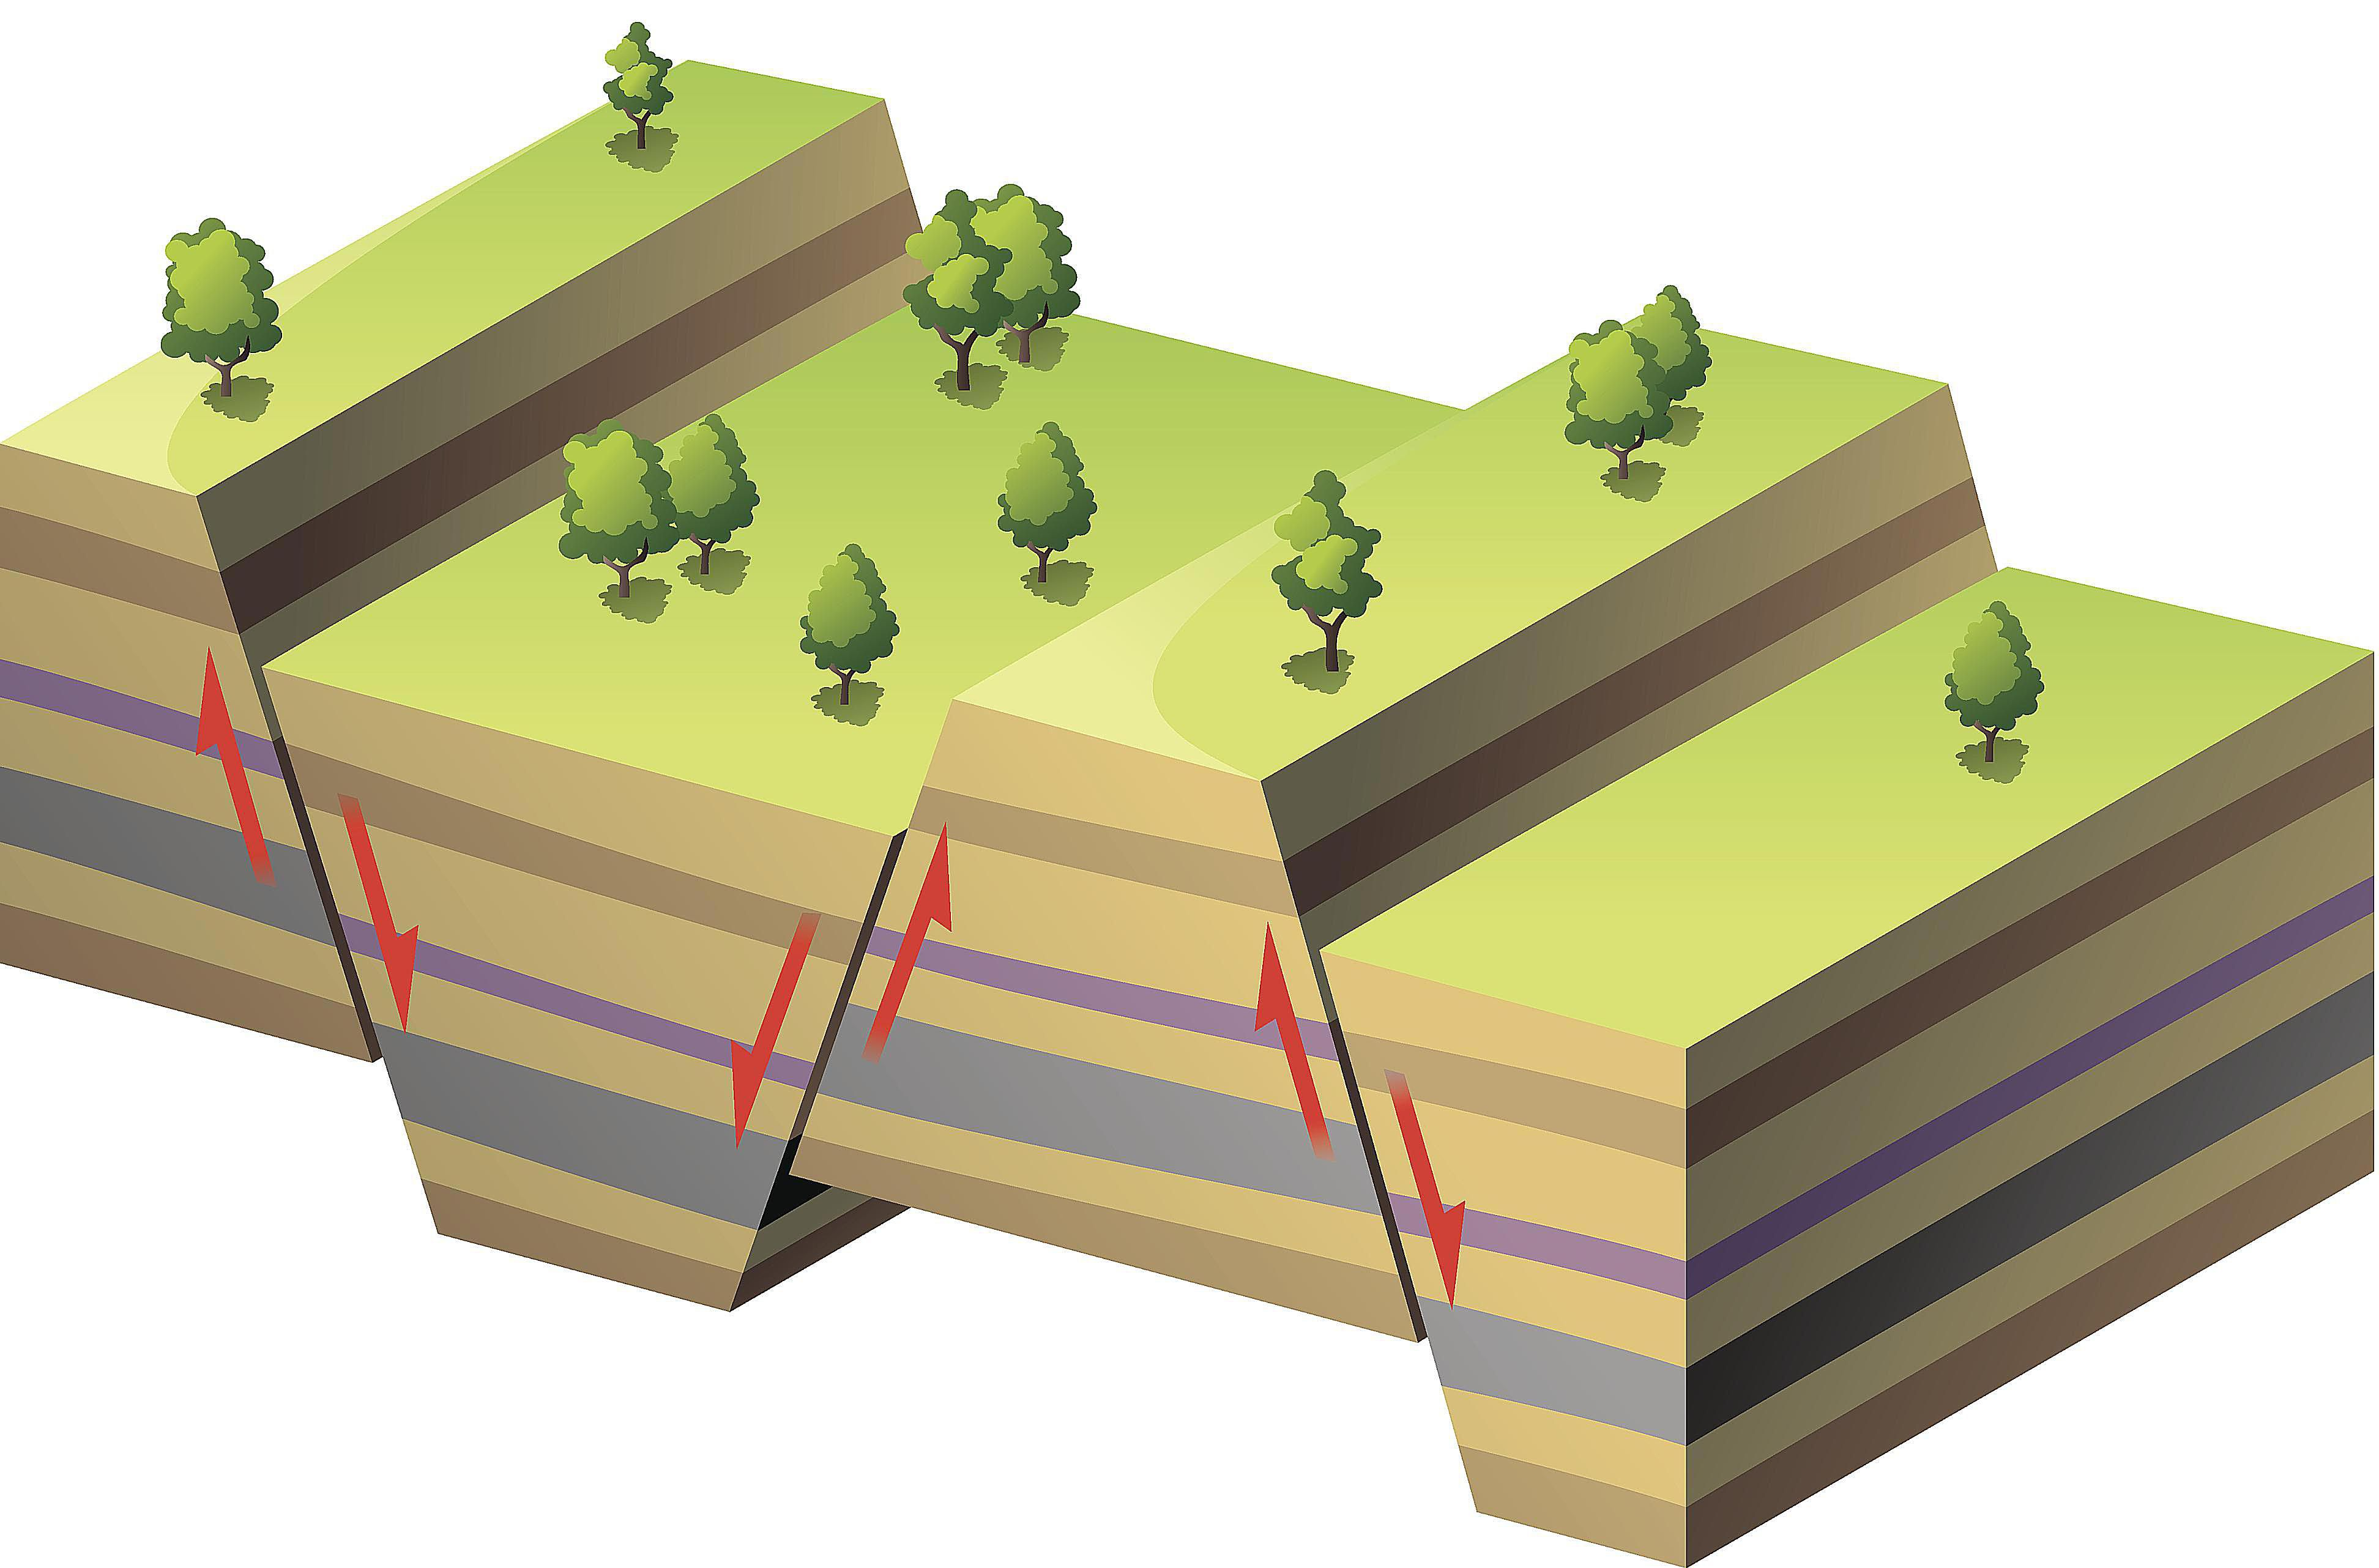 What You Should Know About Plate Tectonics